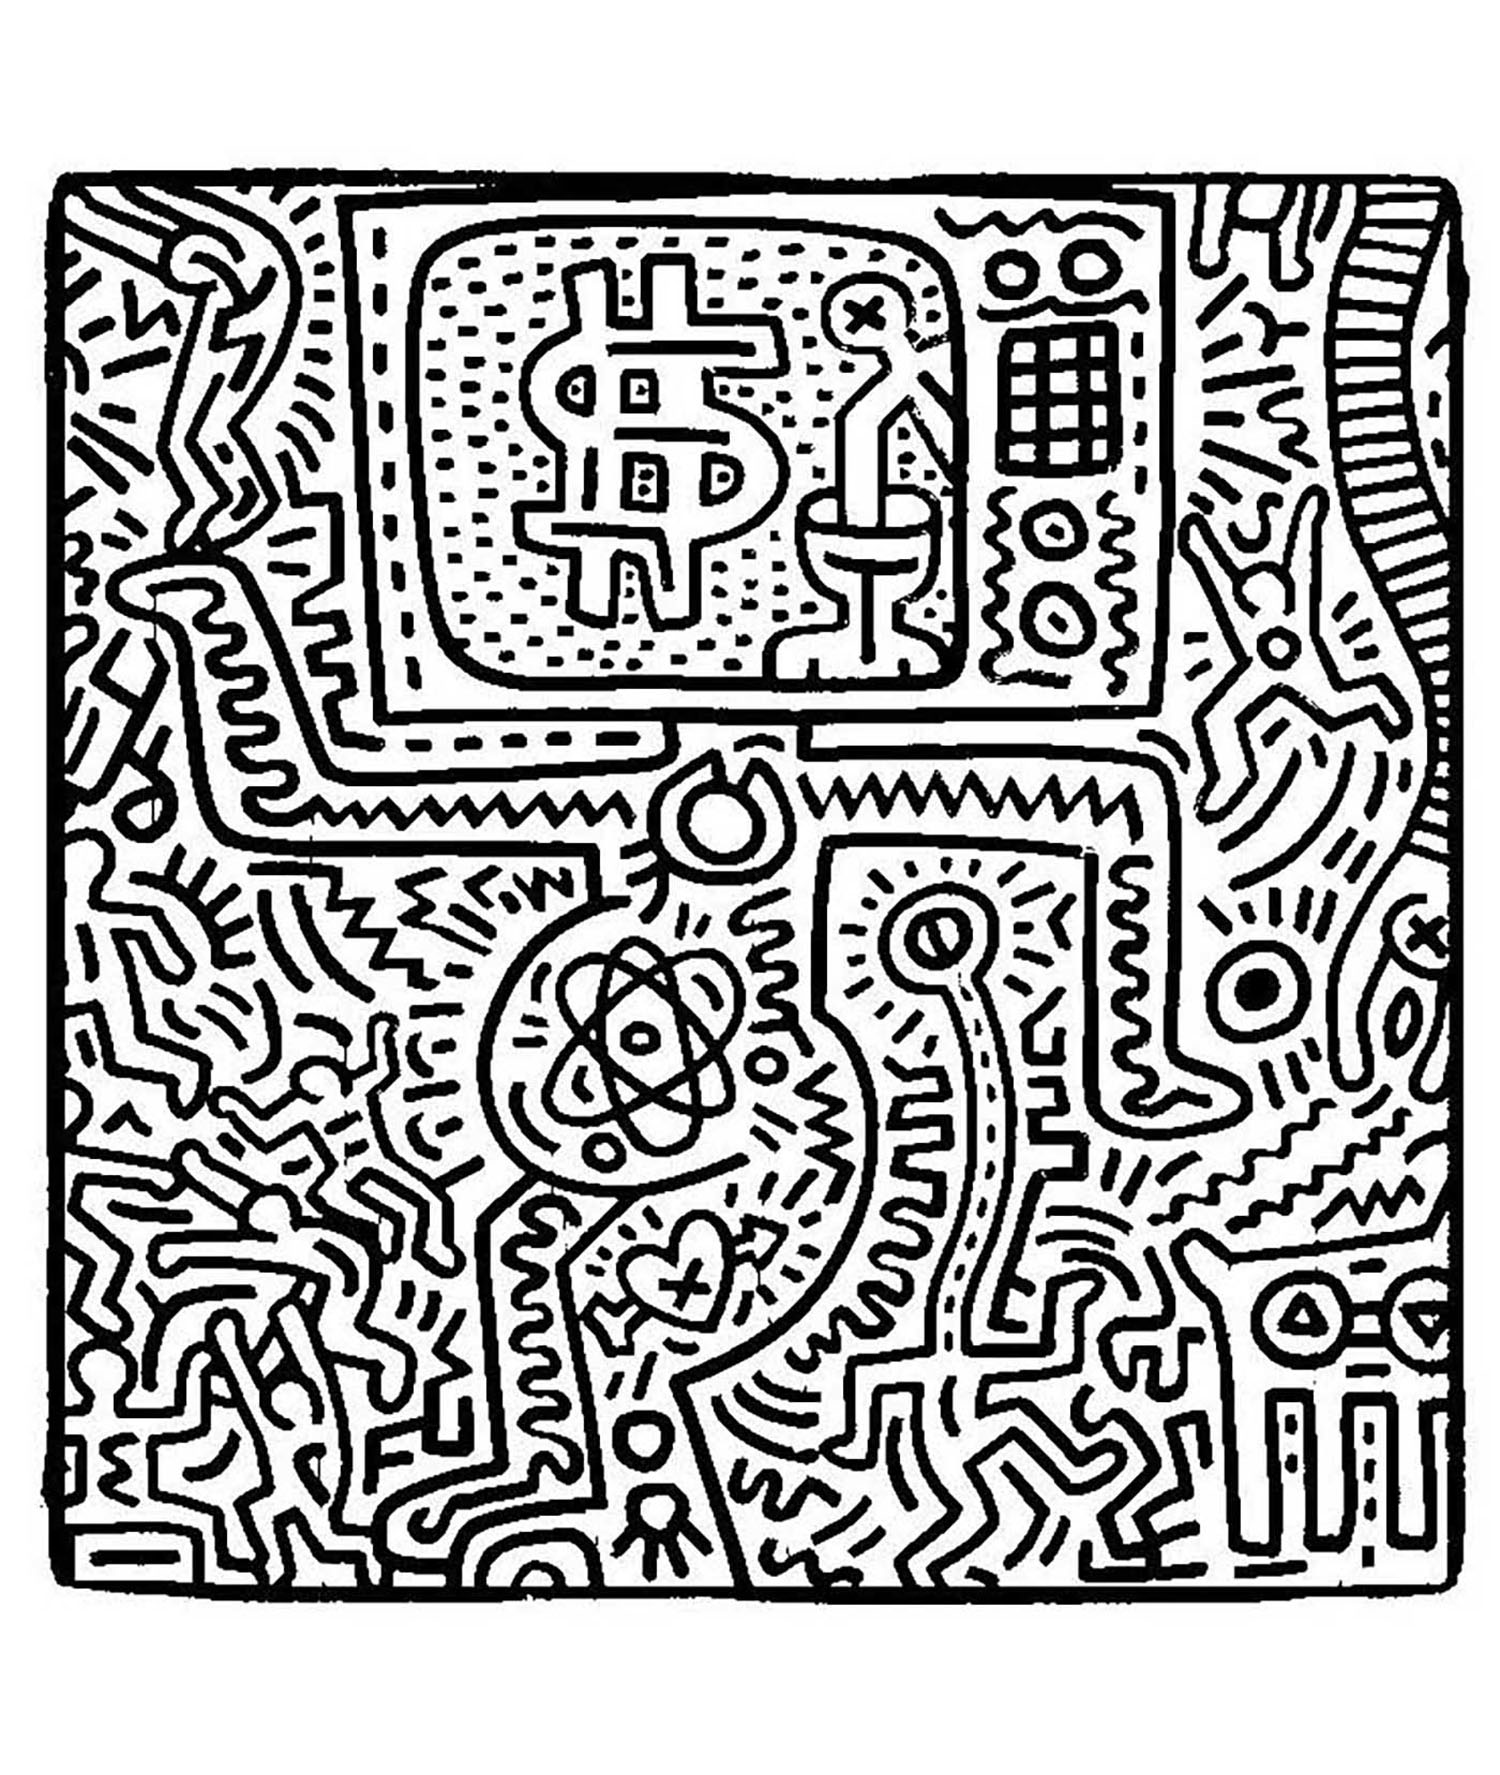 Keith haring free to color for children - Keith Haring ...